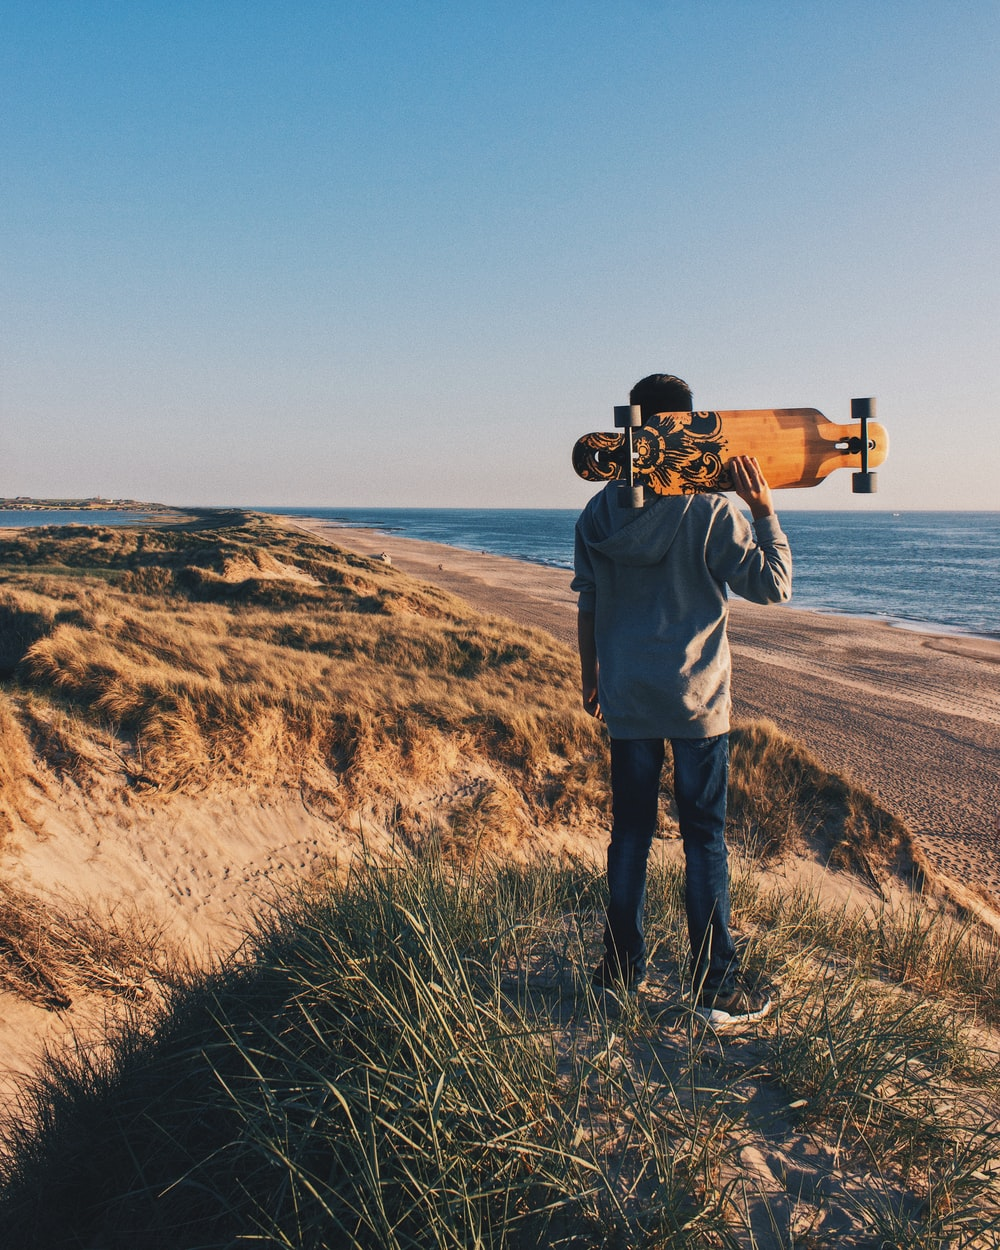 person holding a skateboard in a hill near body of water during daytime